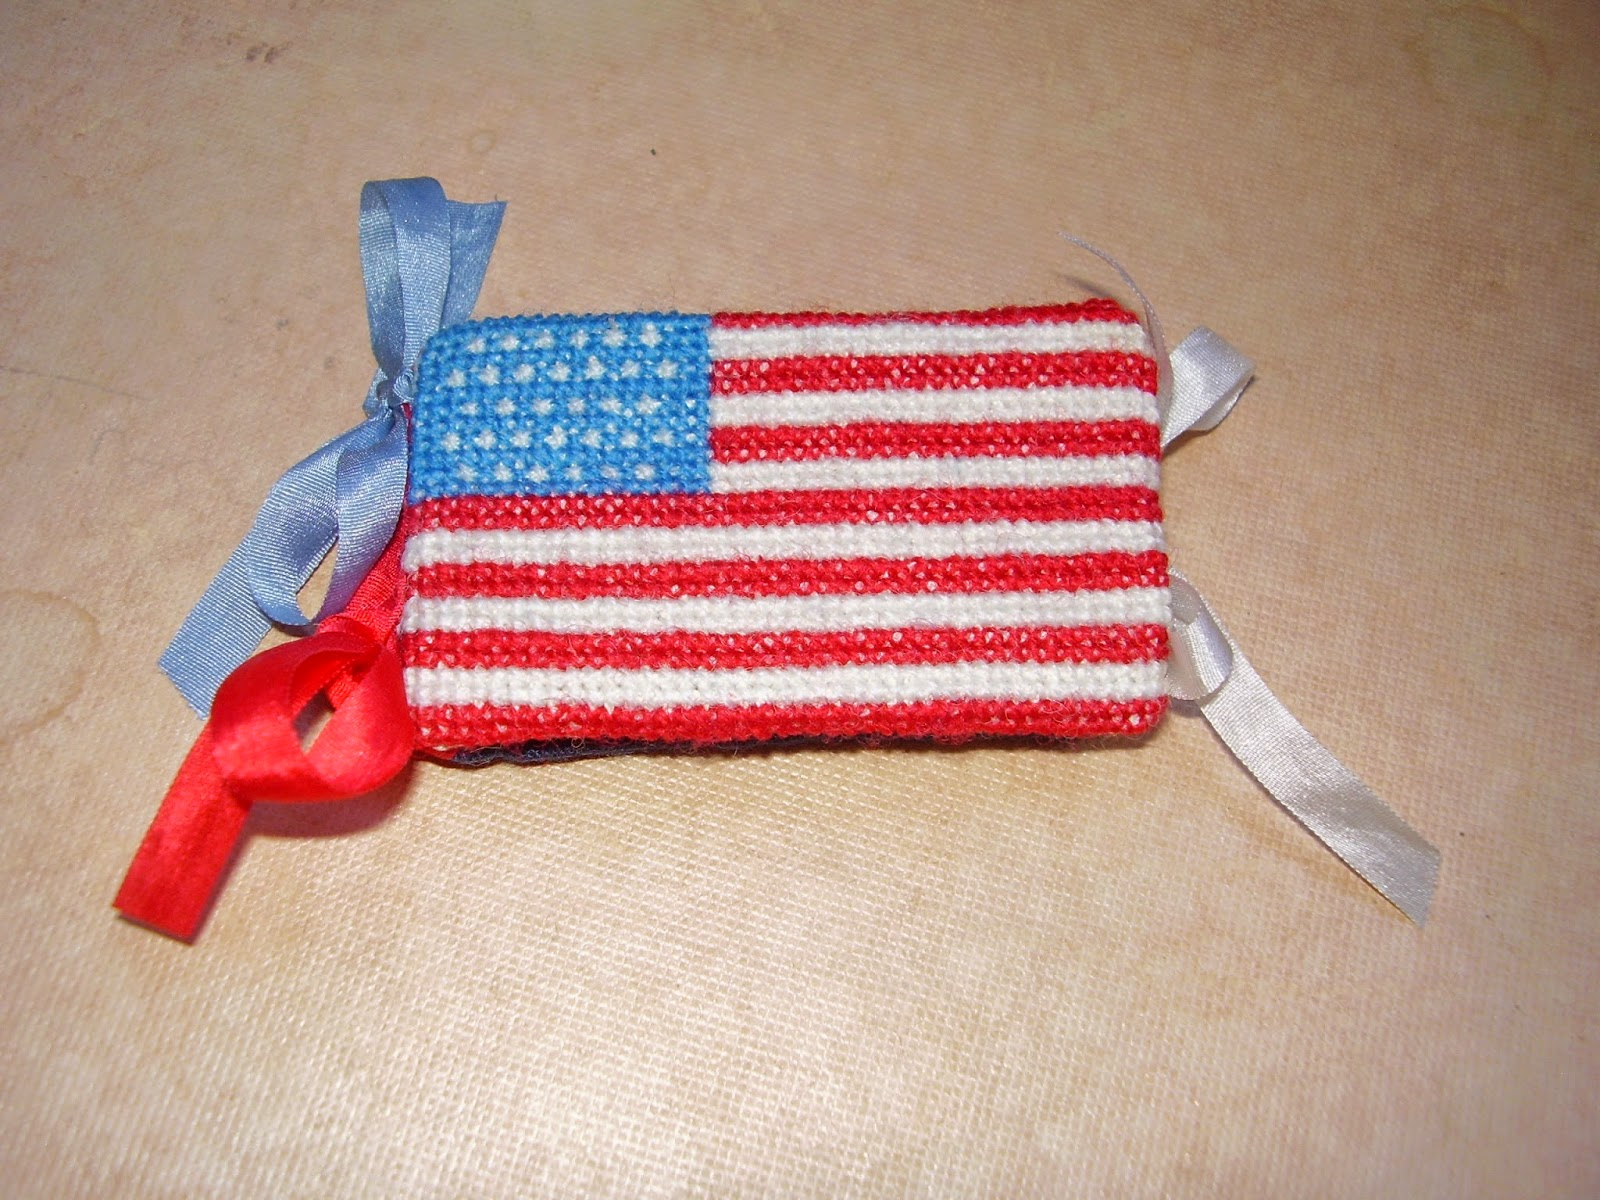 Needle book of an 1858-9 American Flag.